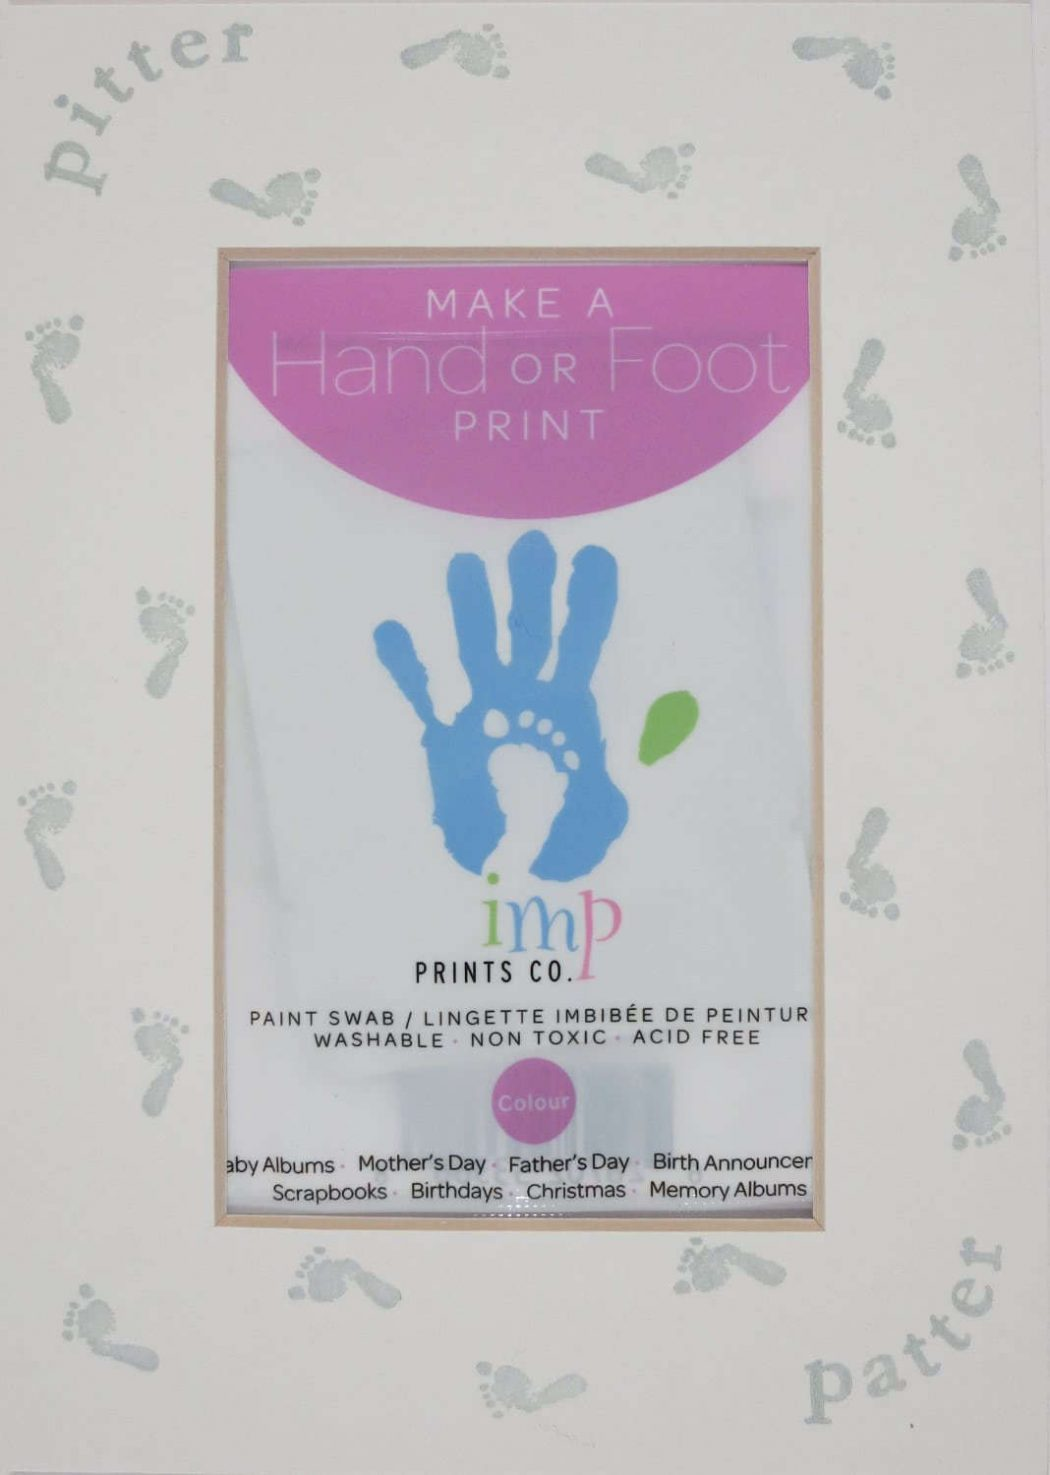 Purple Footprint Mat Kit, Printed